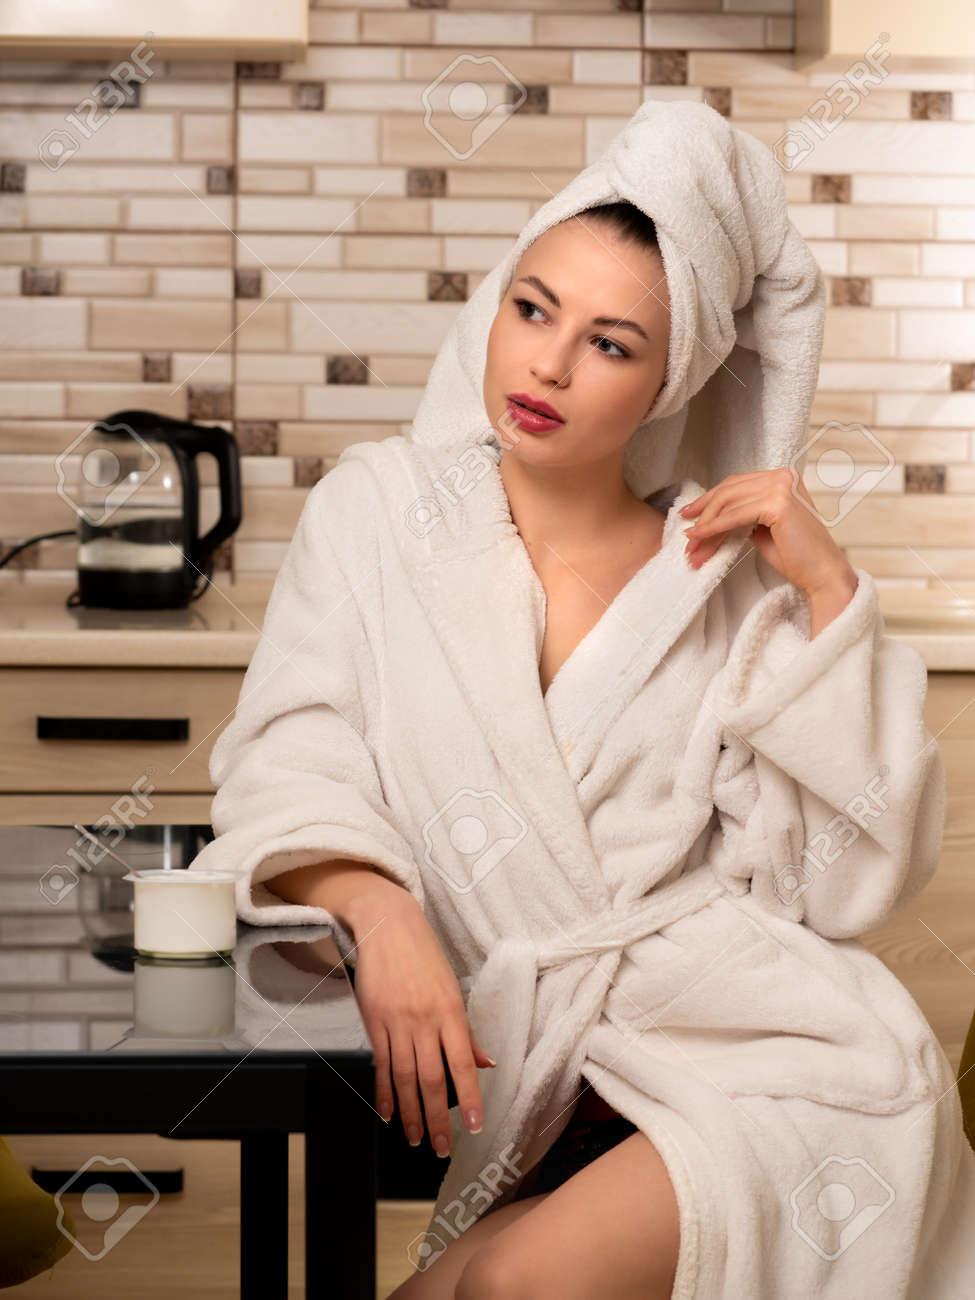 A young woman, a housewife in the kitchen sits at a table in a white bathrobe. - 167003139